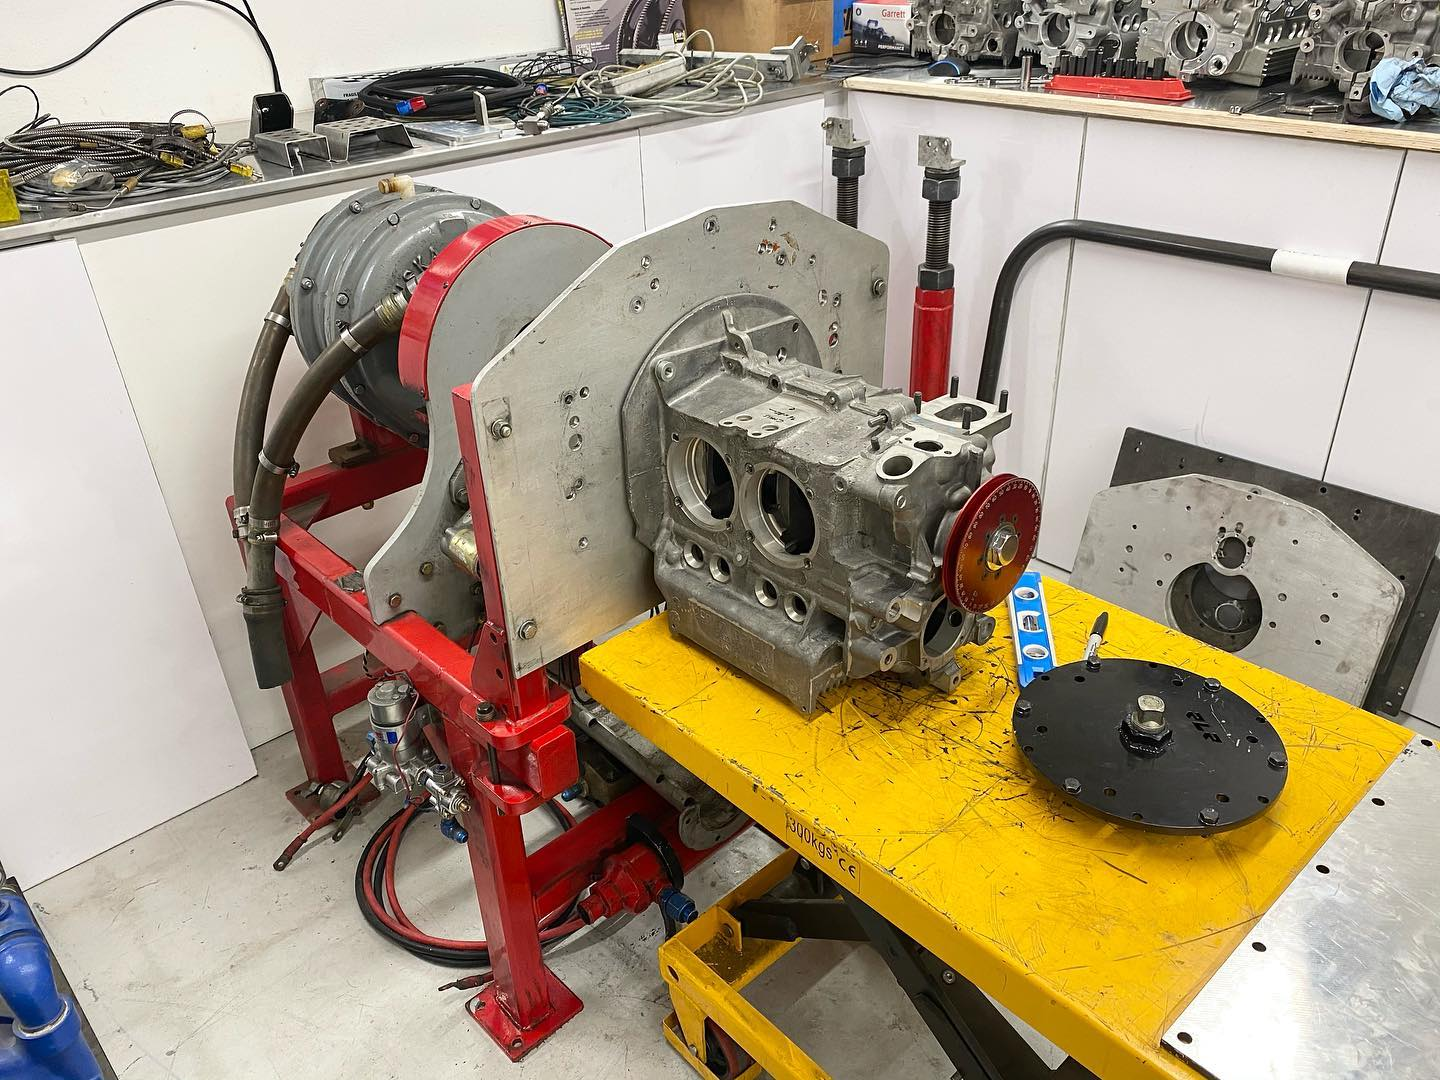 Building the ACE Racing engines Dyno room for aircooled VW and Chevrolet LS engines